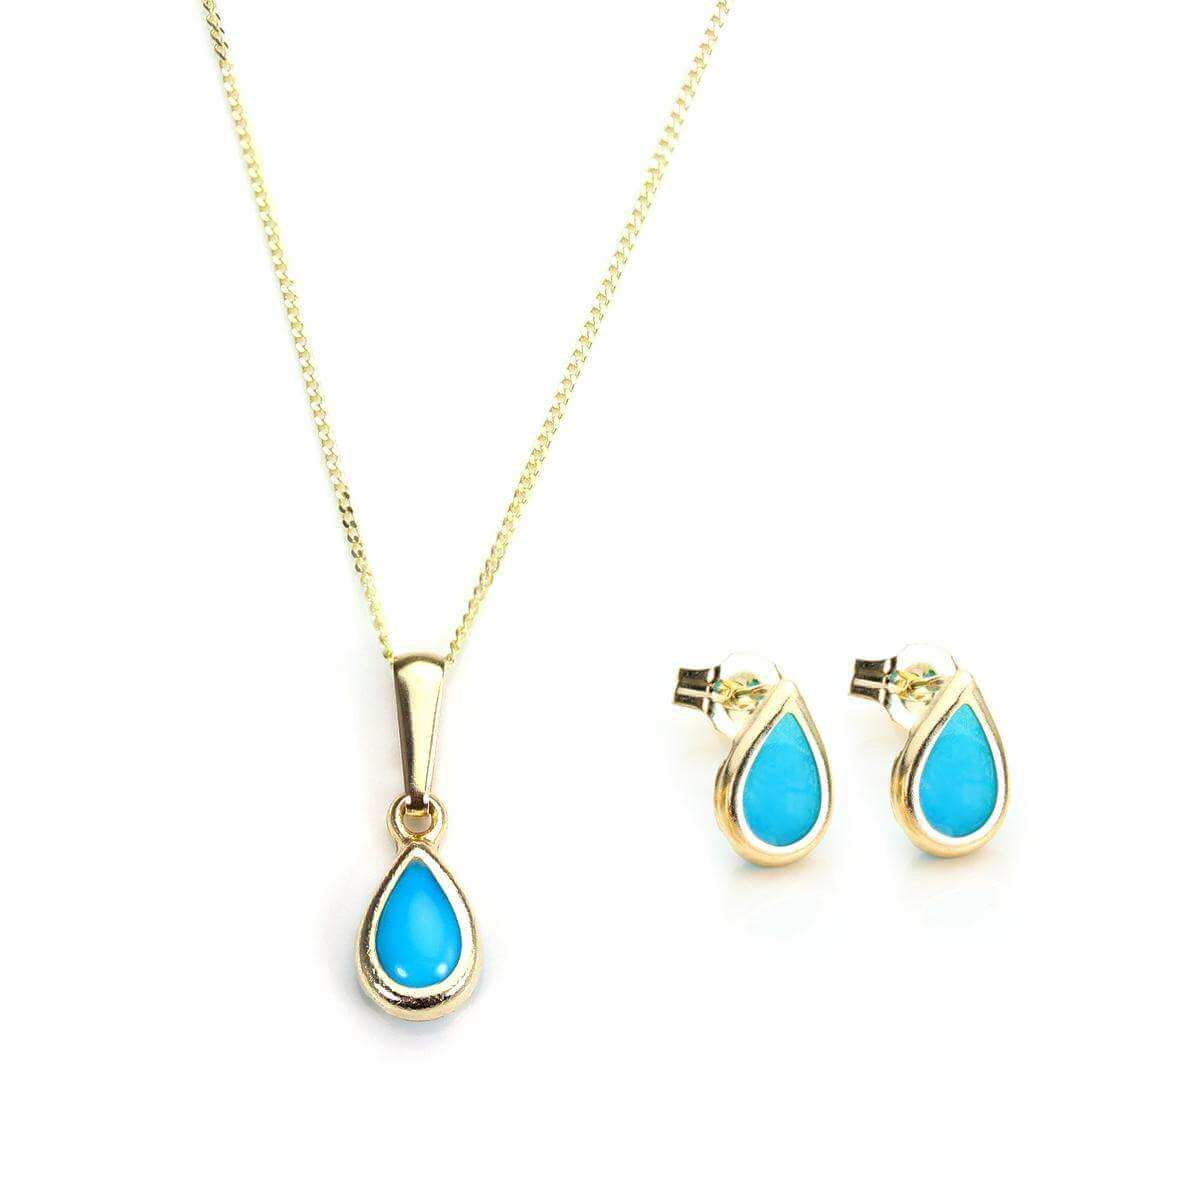 9ct Gold & December Birthstone Pendant & Stud Earrings Set